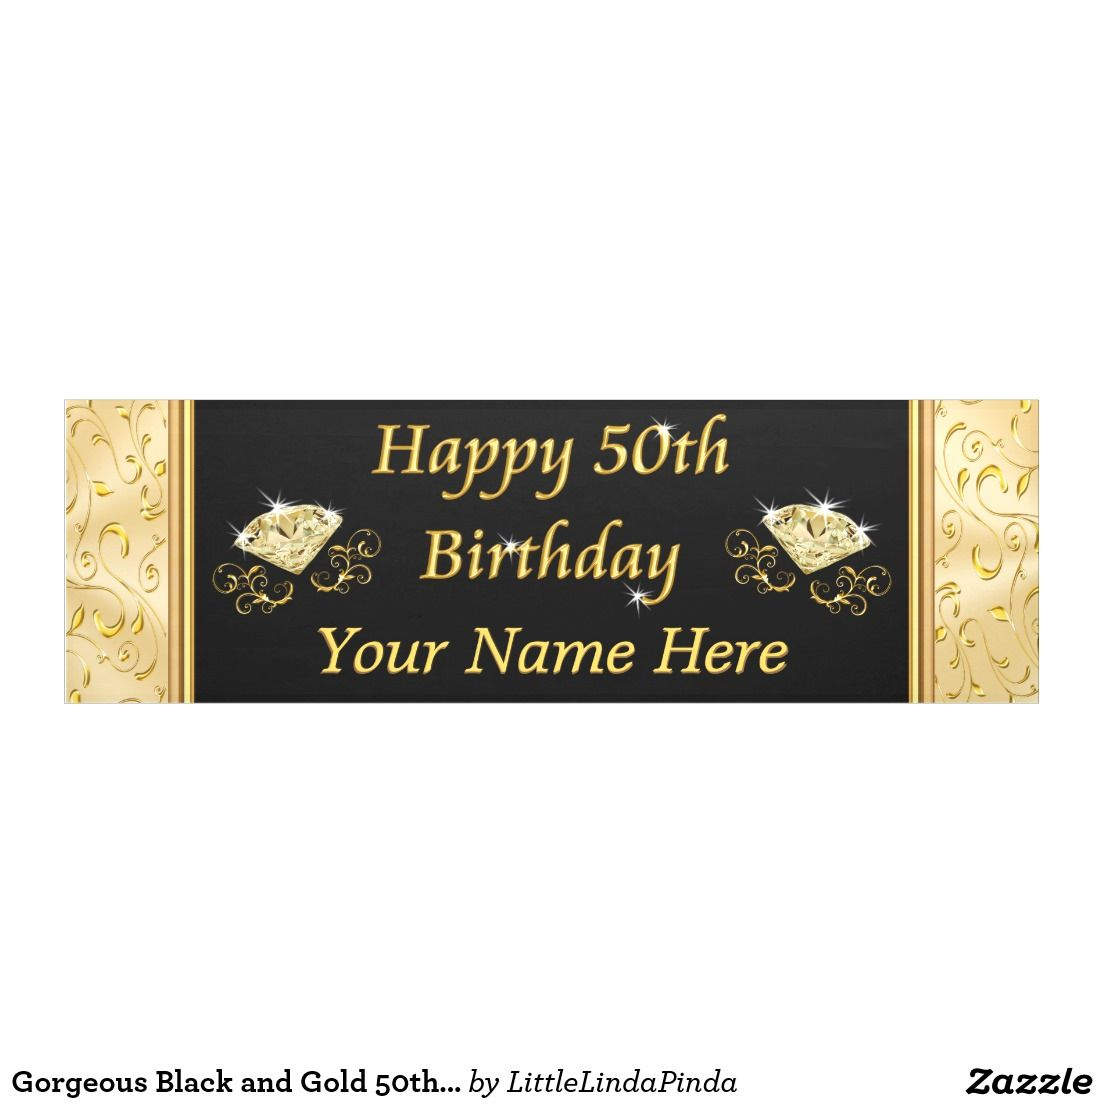 personalized gorgeous black and gold 50th birthday banner for her